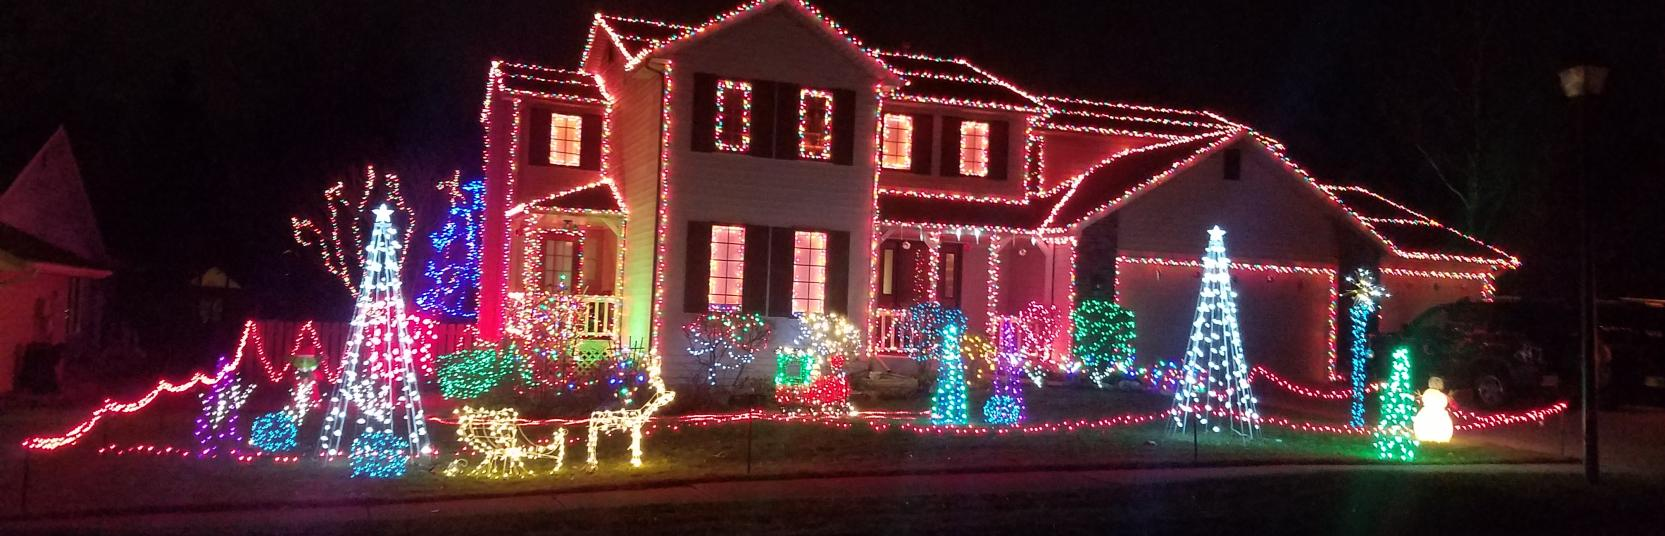 Christmas Light Displays.Best Fort Wayne Christmas Light Displays